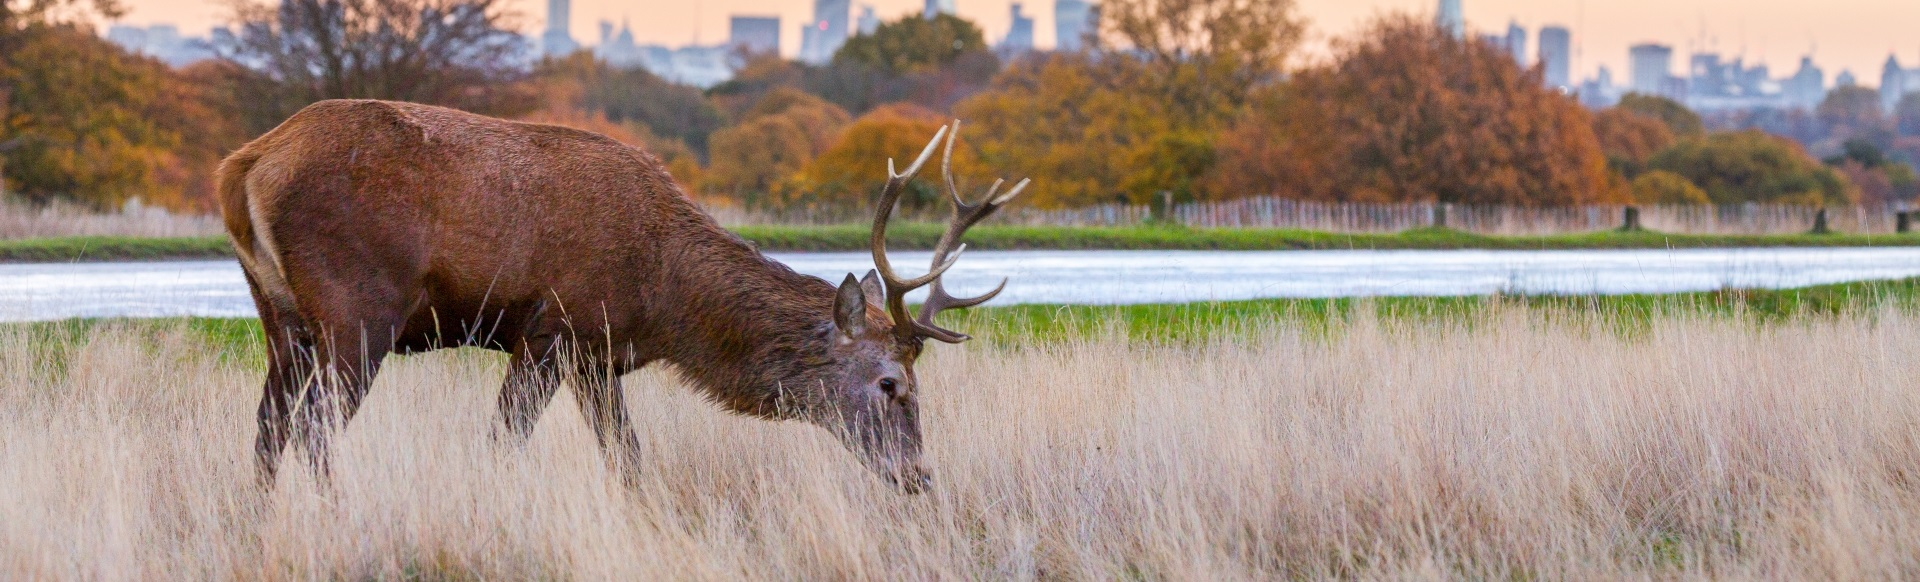 Deer grazes in Richmond Park in front of autumnal trees and the London skyline.